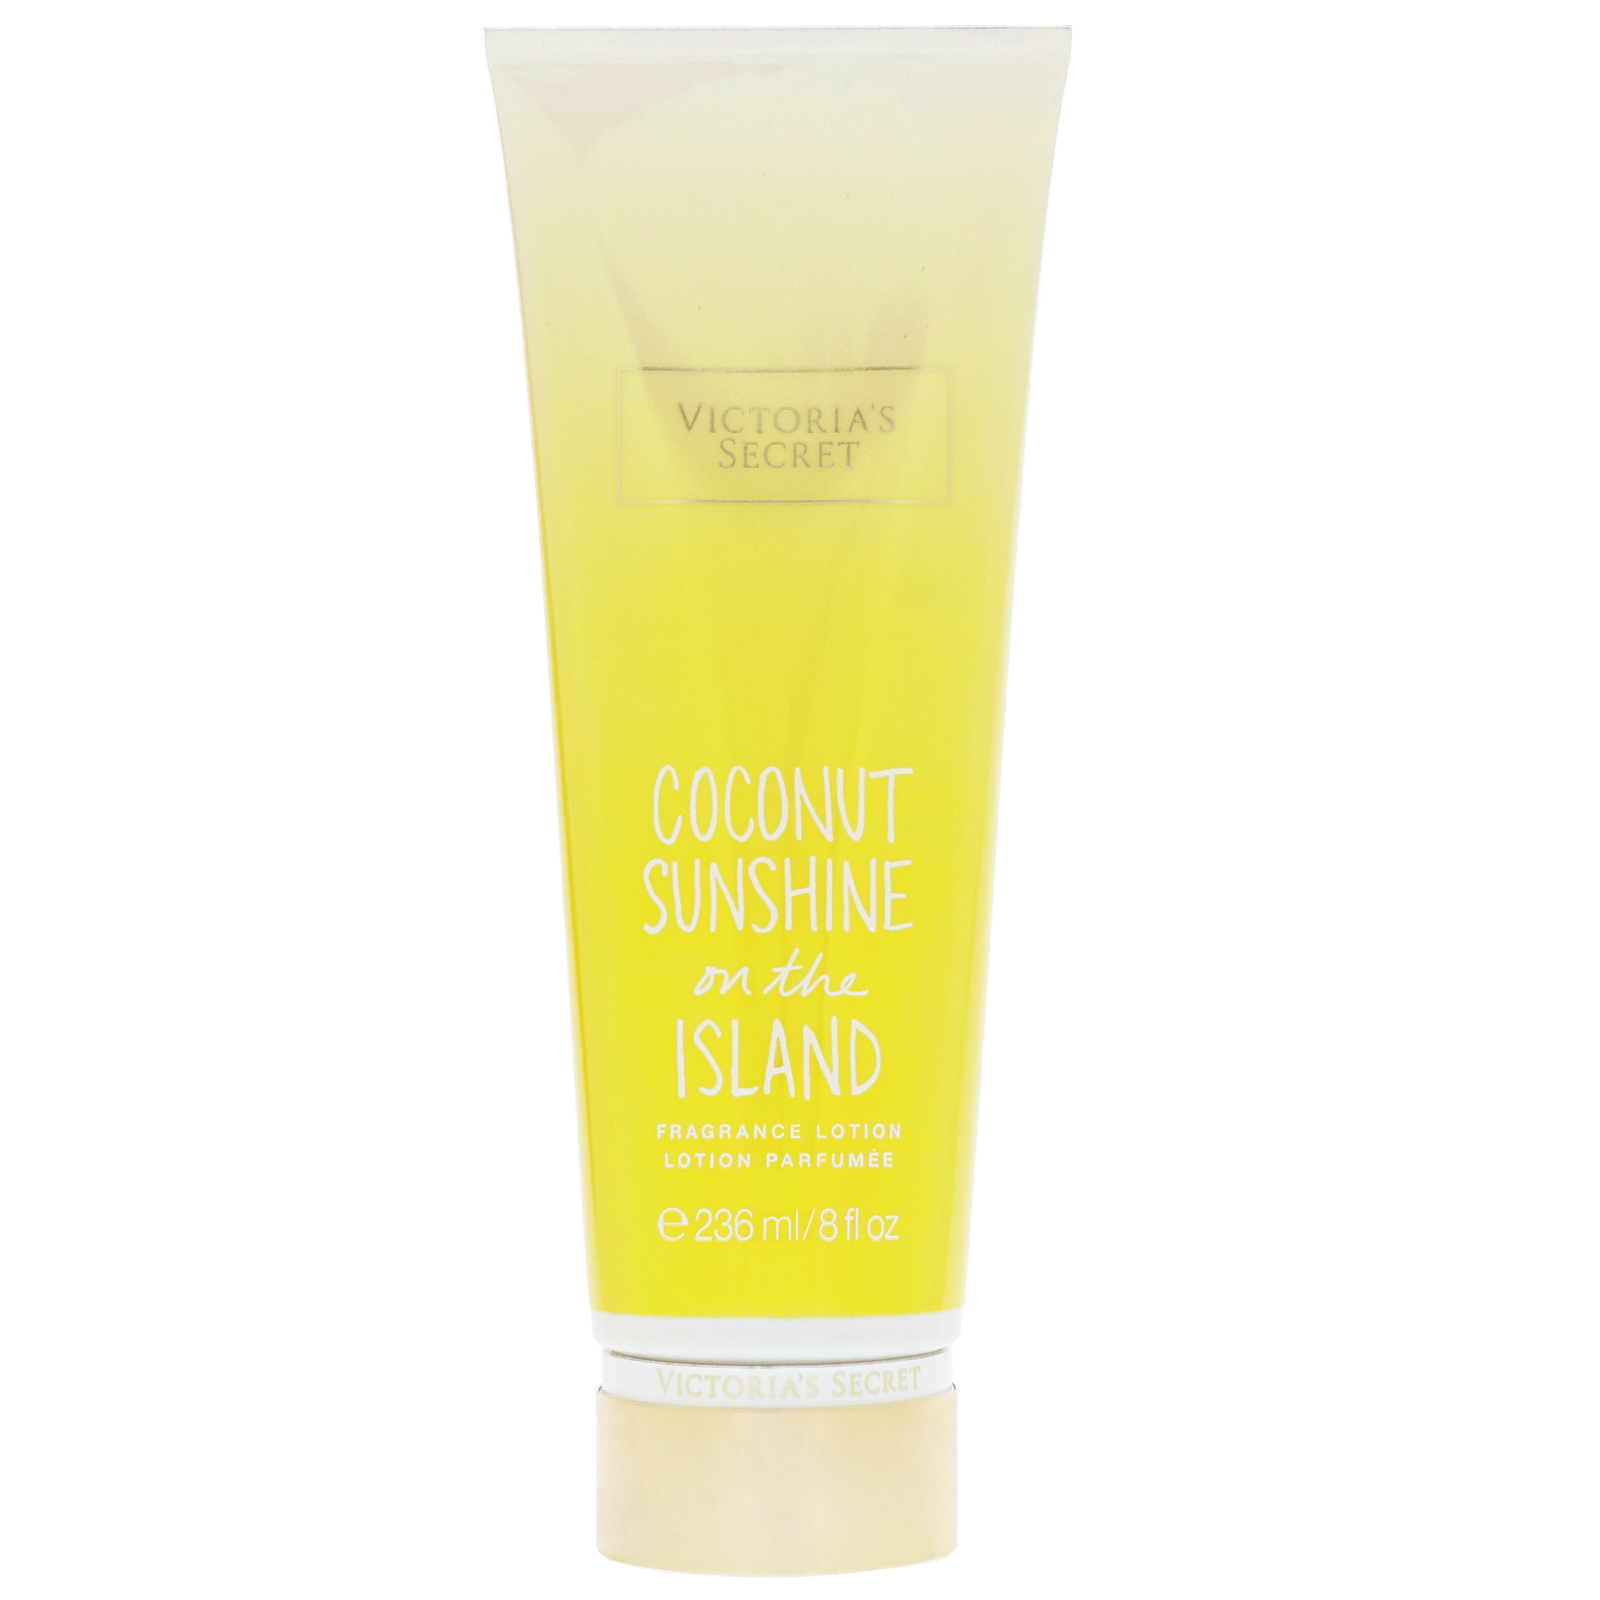 Victoria's Secret Coconut Sunshine On The Island Body Lotion 236ml